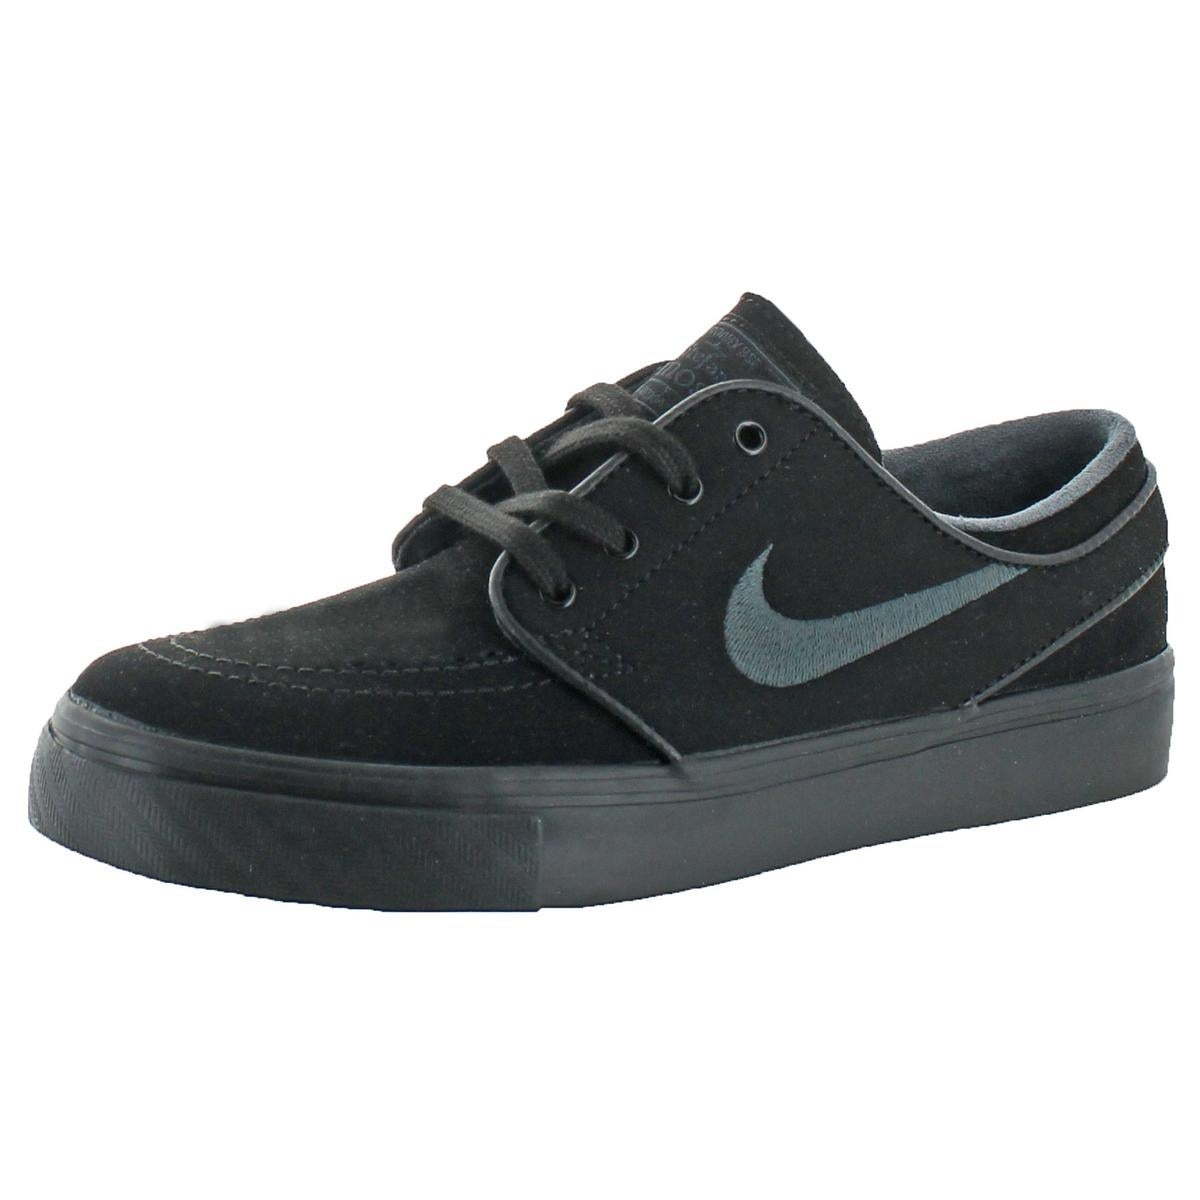 the best attitude 99ee1 dc639 Shop Nike Mens SB Zoom Stefan Janoski Skateboarding Shoes Zoom Air Low Top  - Free Shipping On Orders Over  45 - Overstock - 21942171